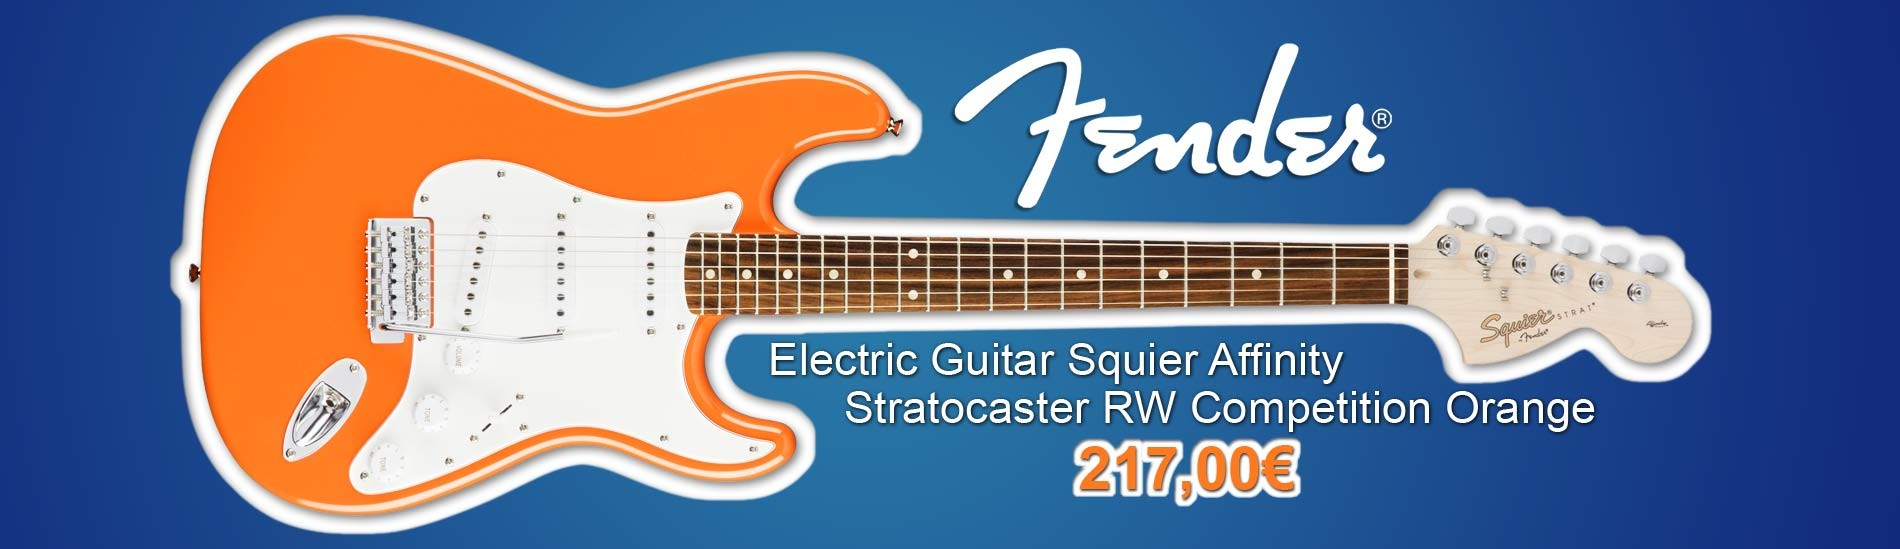 Fender Squier Electric Guitar Affinity Stratocaster RW Competition Orange